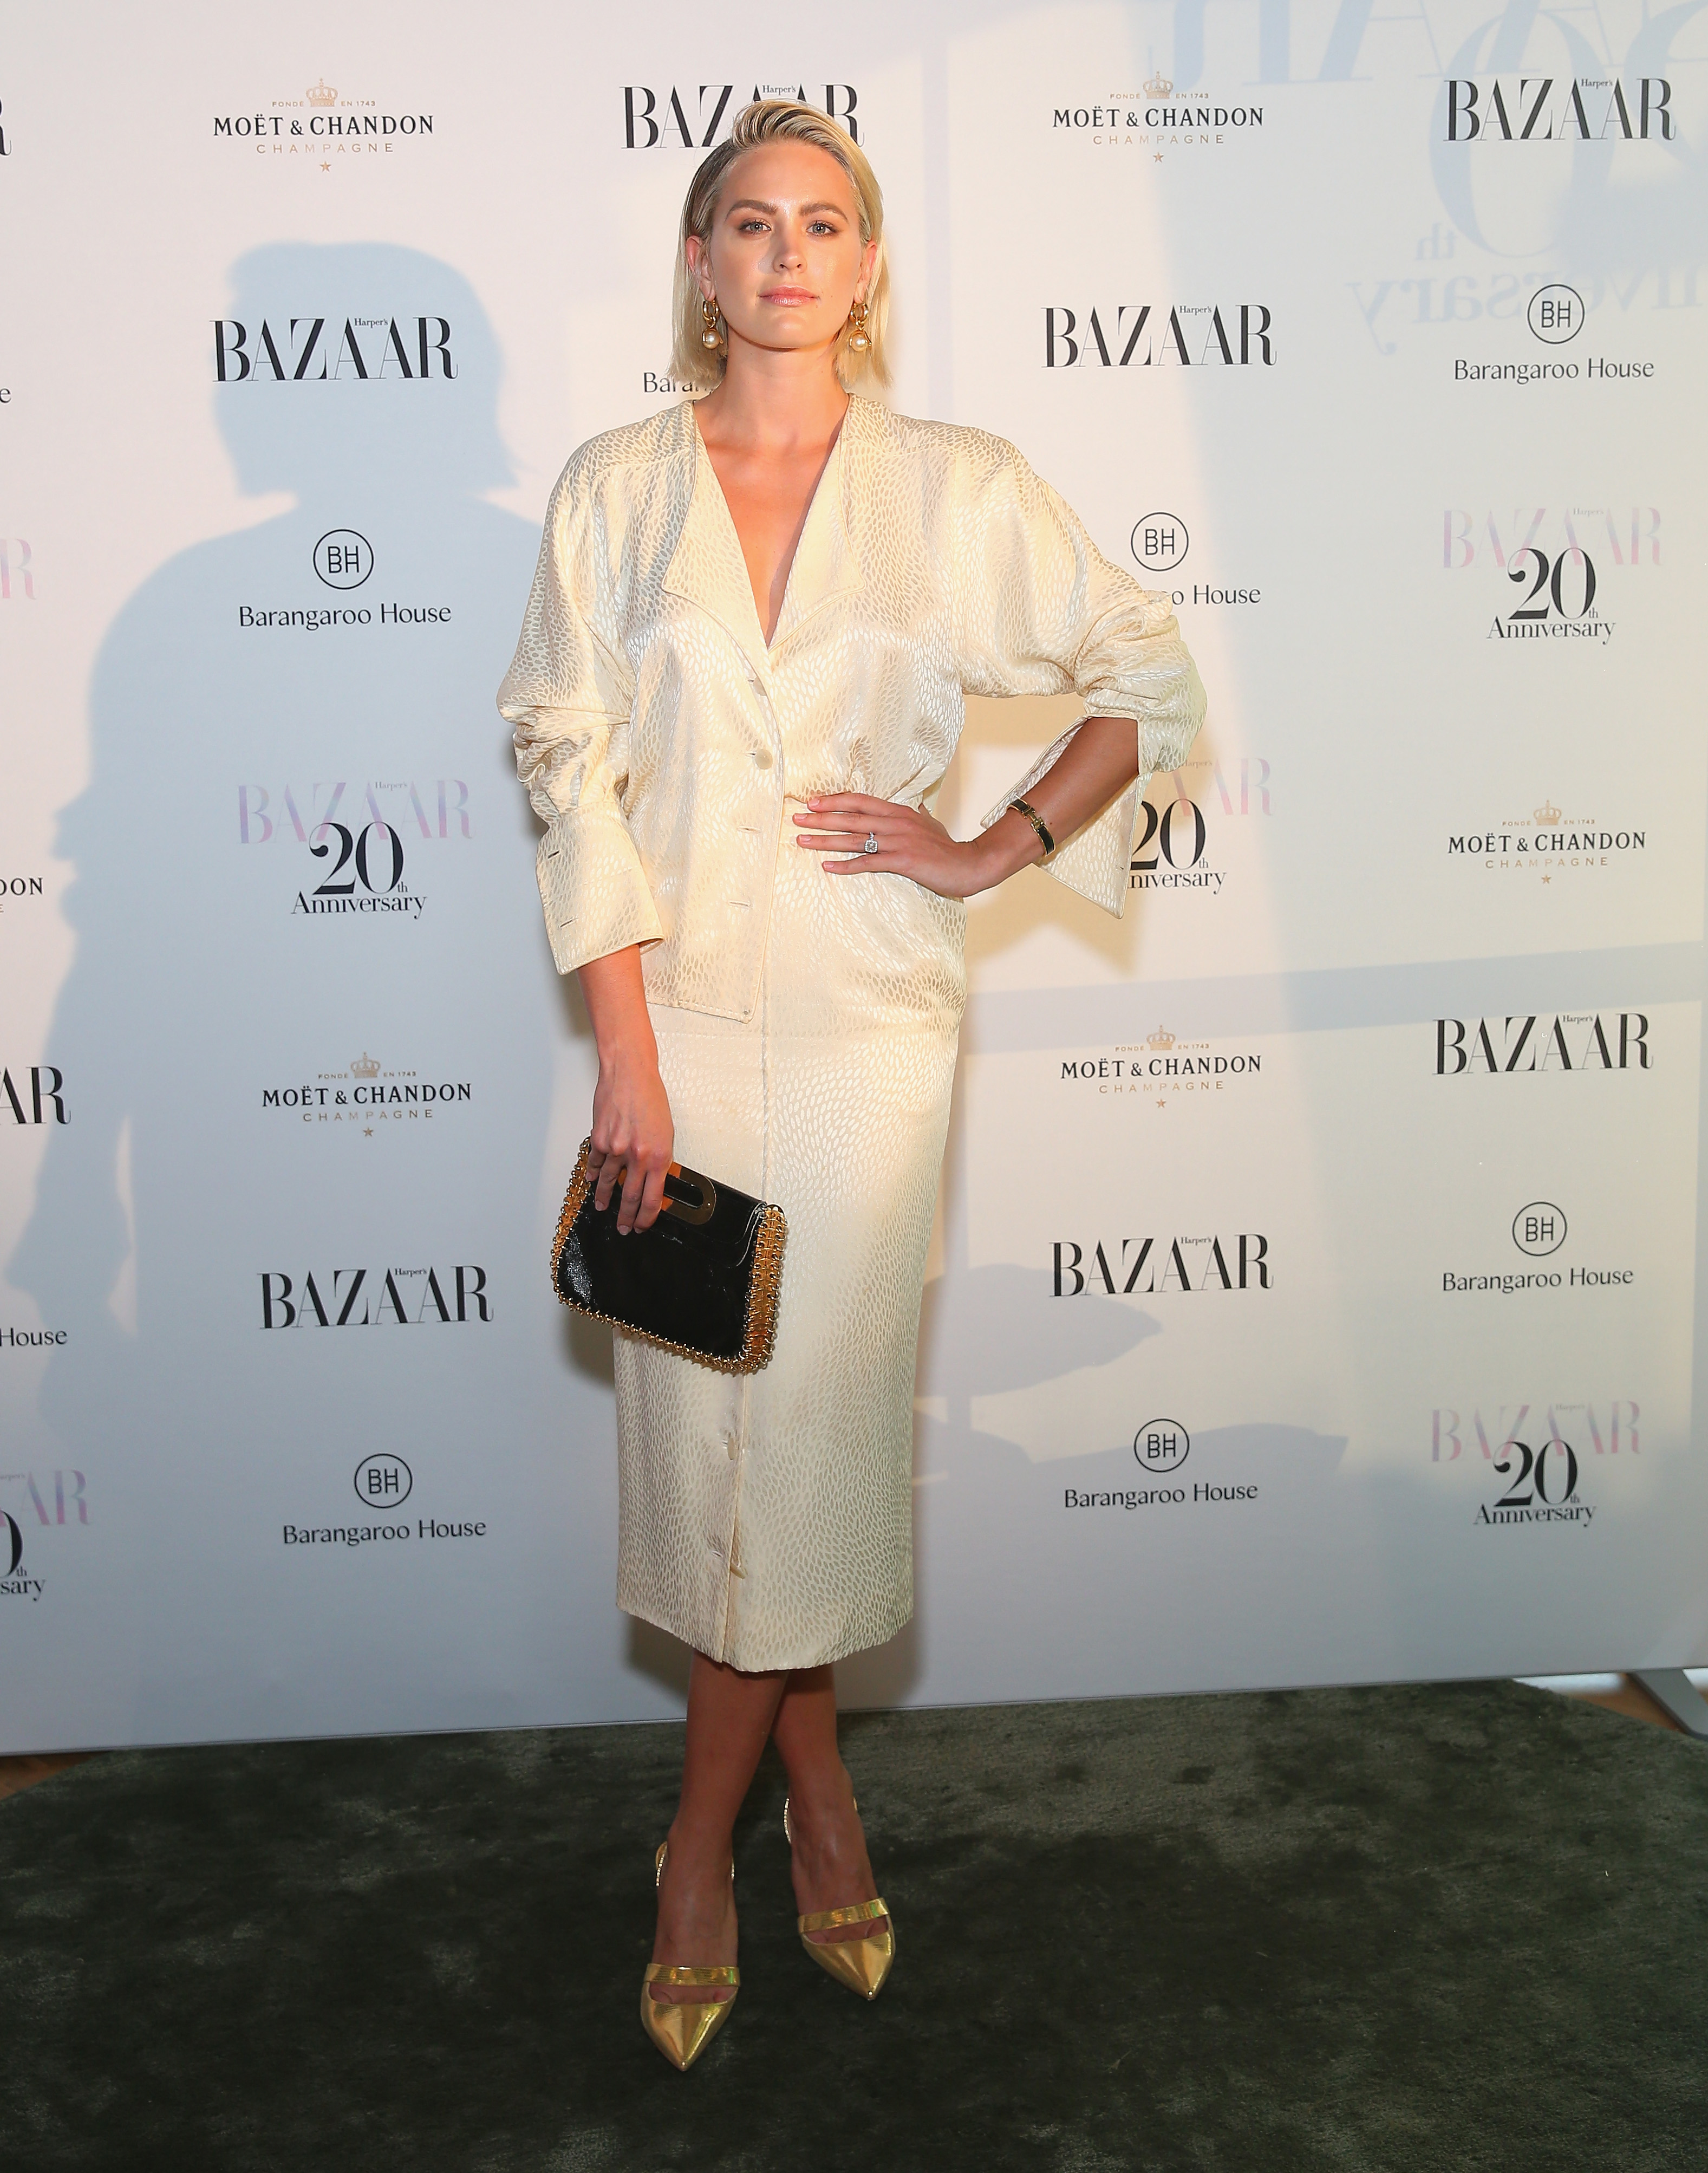 "<p>Sydney's style set turned out last night to celebrate <em>Harper's Bazaar</em>'s 20th anniversary celebrations</p> <p>Jesinta Campbell, Lindy Klim, and Jasmine Yarbrough were among the guests at a VIP party at Matt Moran's new Smoke rooftop bar at Barangaroo House.</p> <p>Editor Kellie Hush told the Sydney Morning Herald that the 318-page bumper edition, featuring actress Margot Robbie on the cover, is a nod to the current fashion climate. ""My whole goal was to put out a magazine that captured an essence of where fashion is today and where it is going, so when you look at it in 20 years, people will think, 'oh wow, that was happening in 2018.'""</p> <p>Click through for our favourite looks from the red carpet...</p>"